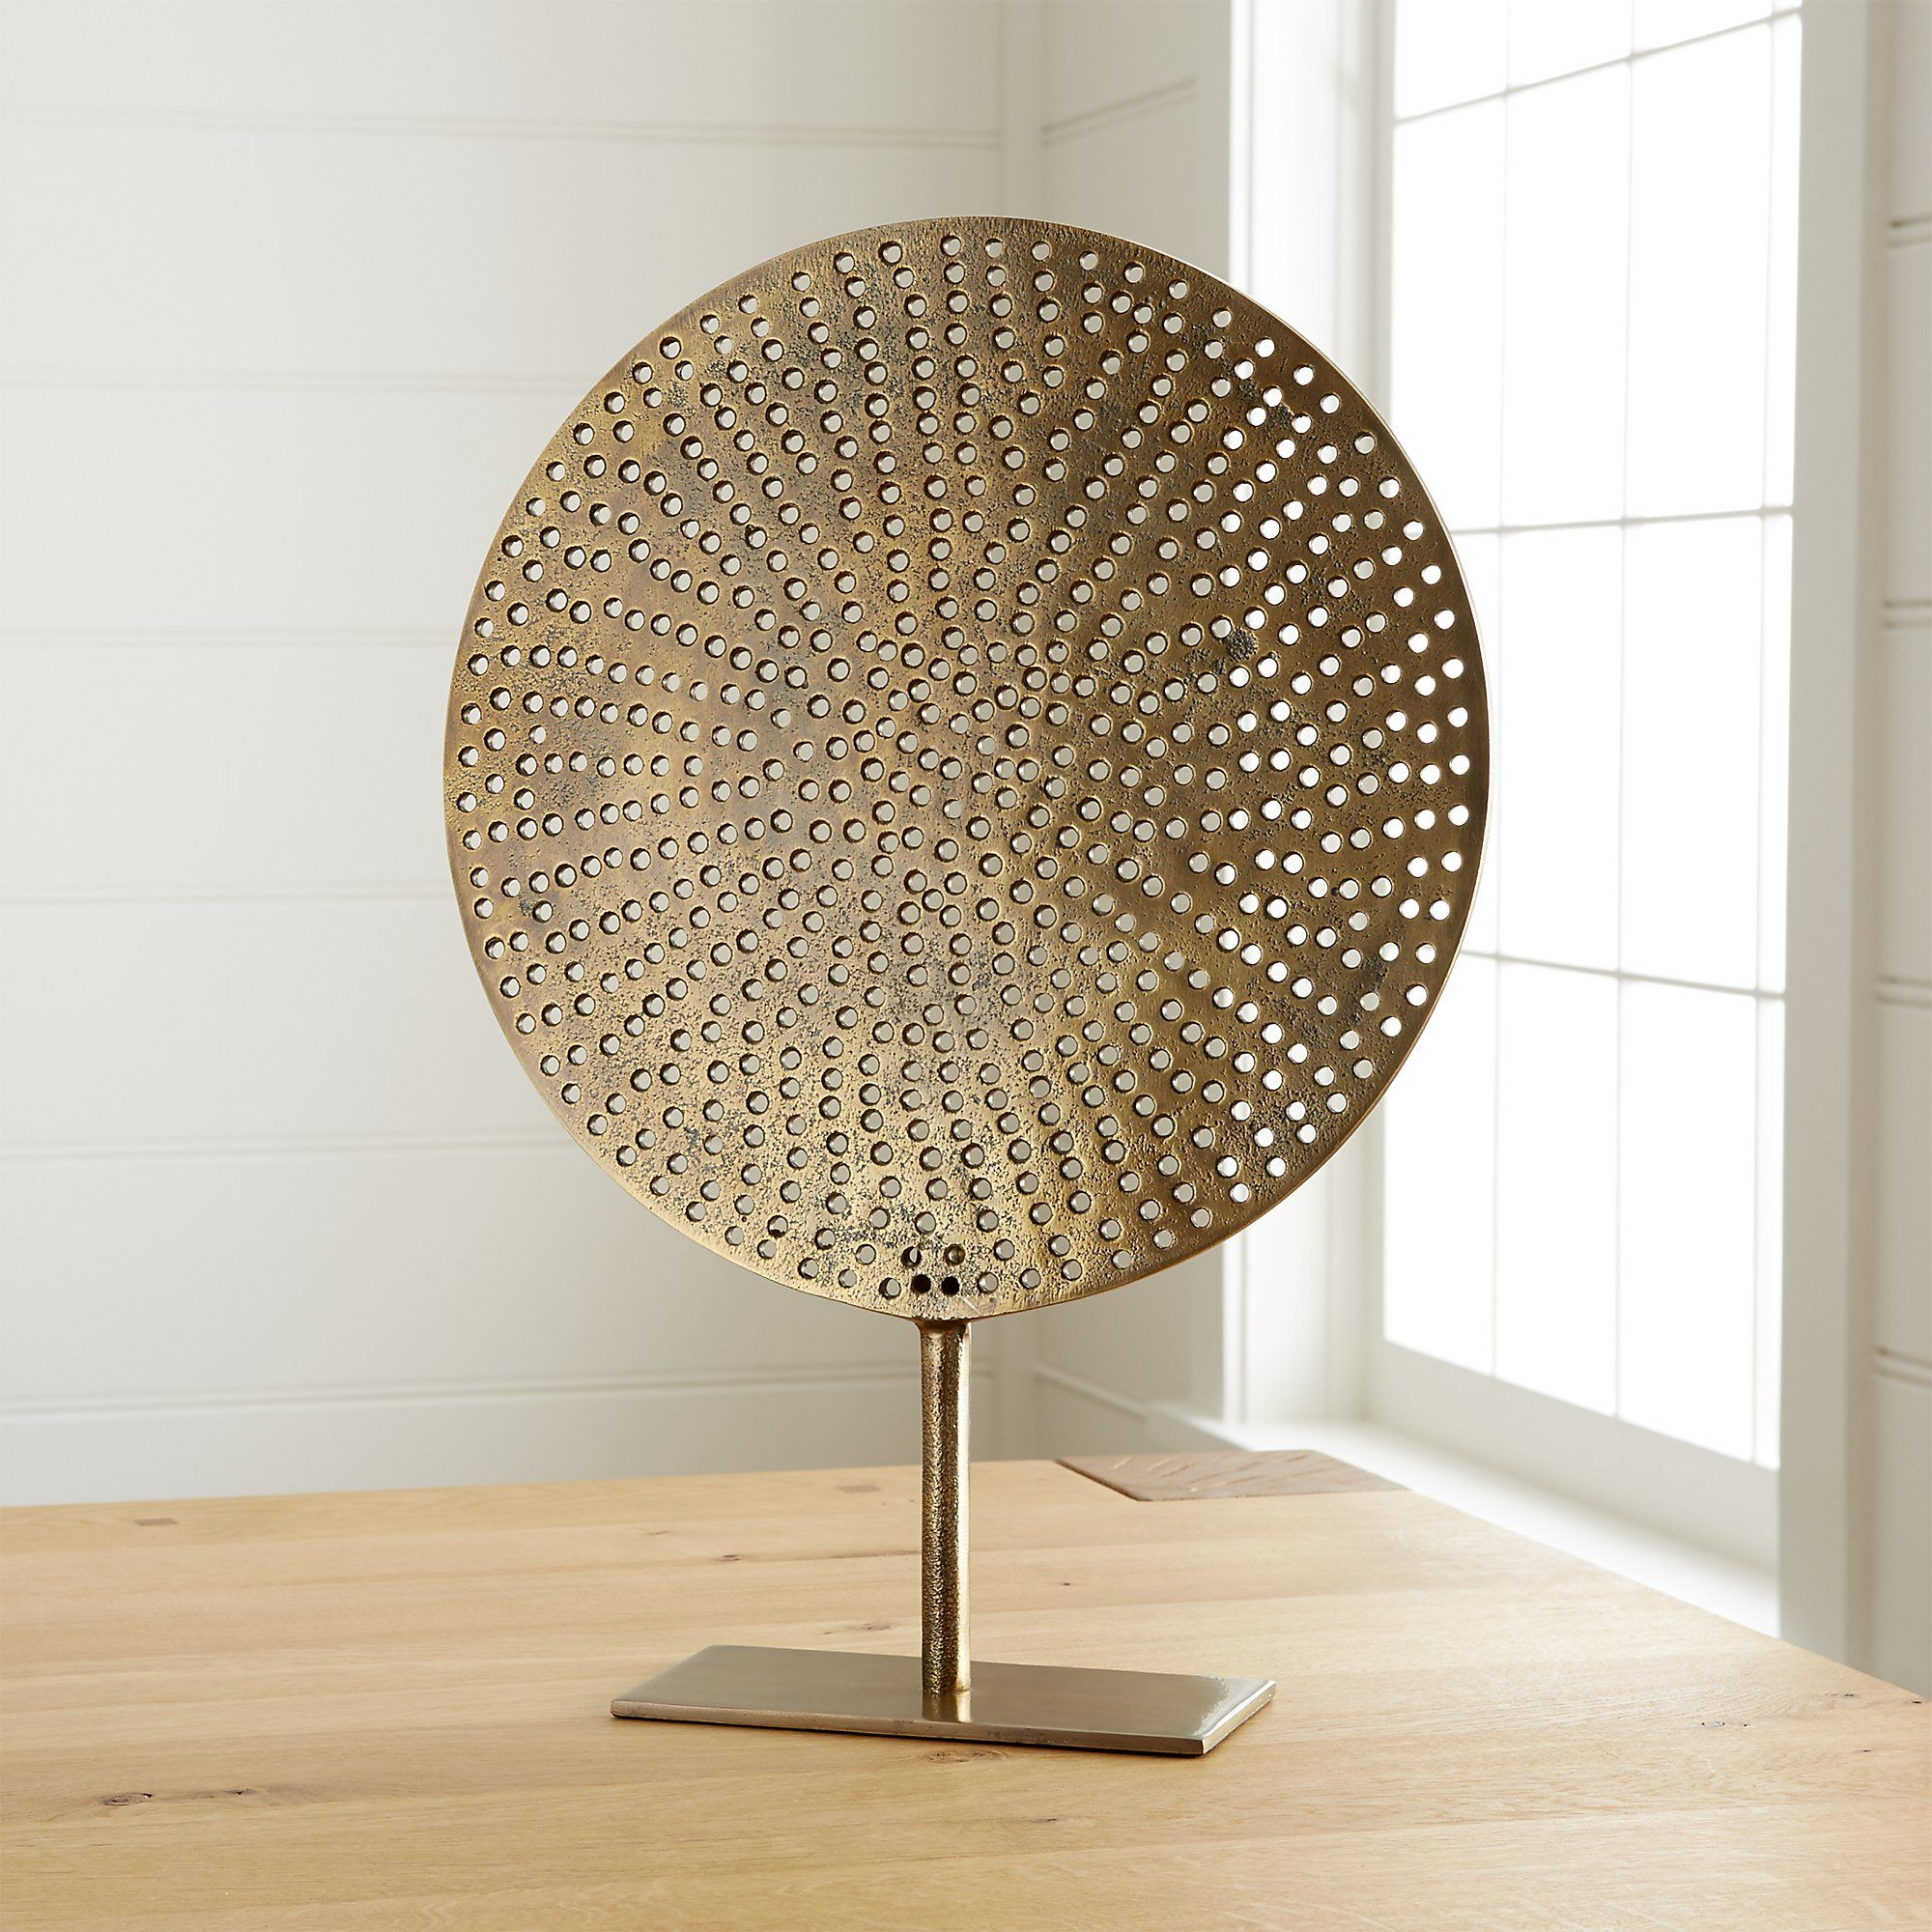 Modern Exhibition Stand Mixer : Brass circle on stand crate and barrel art pinterest